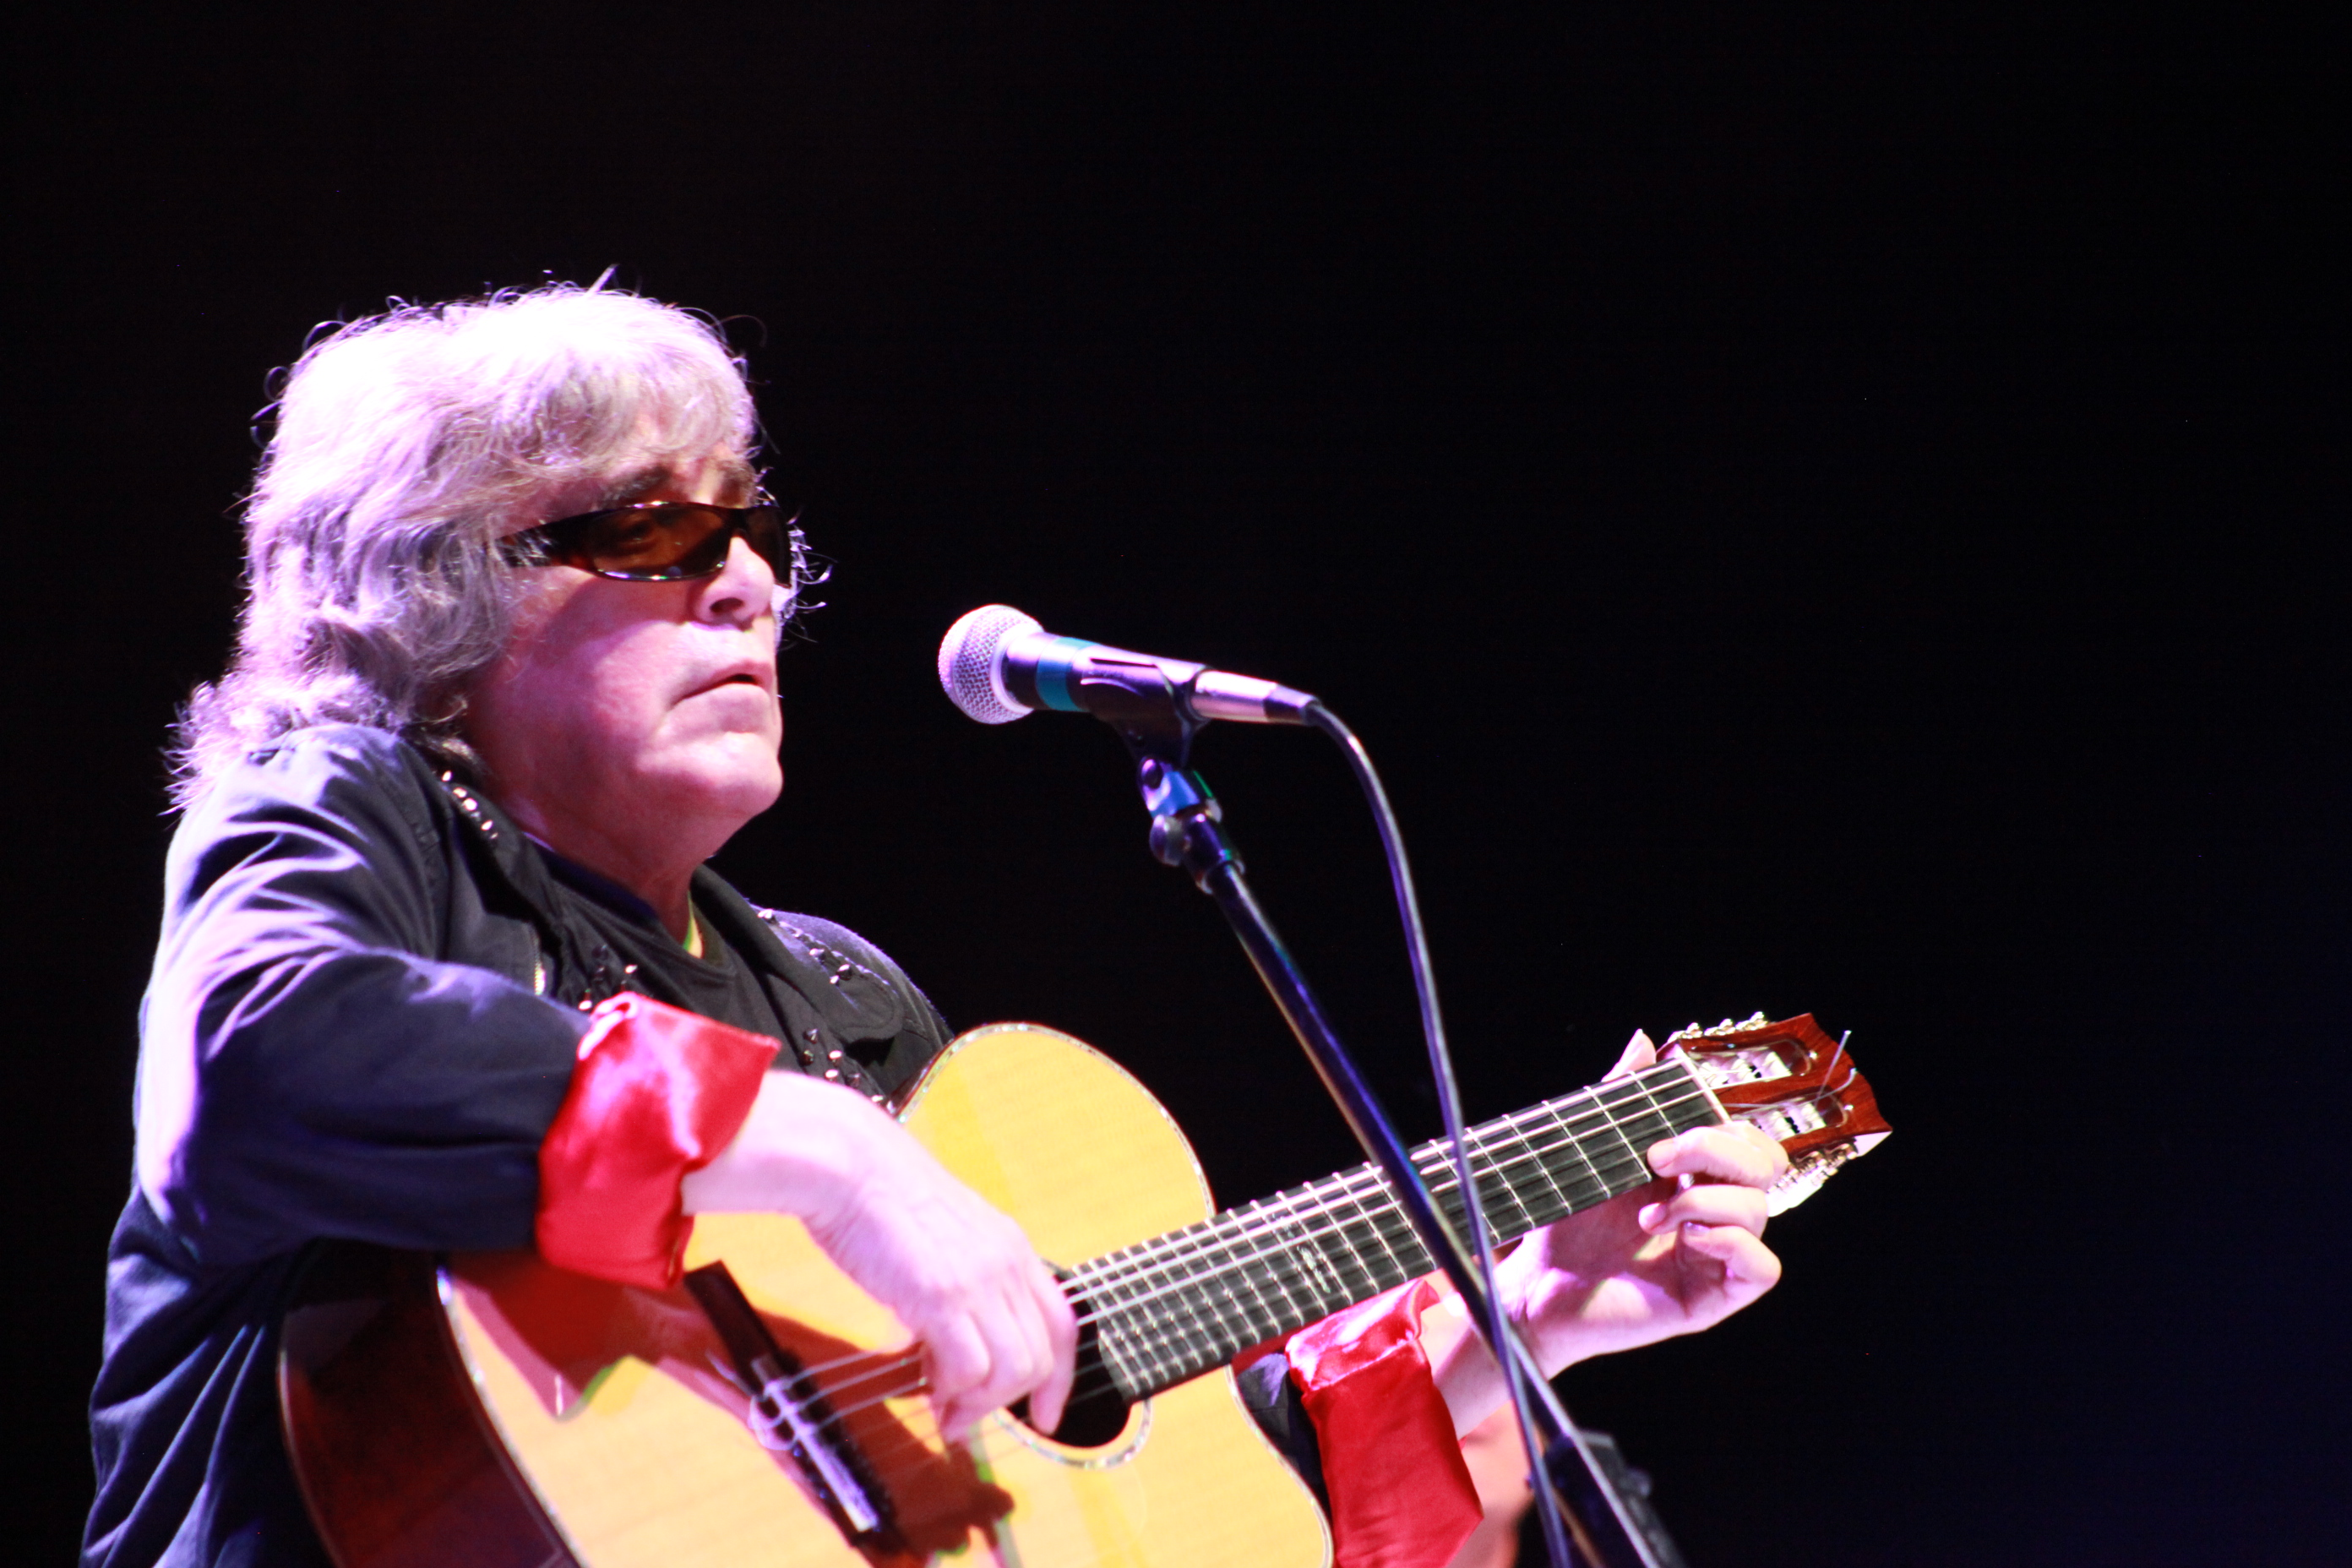 Jose Feliciano performs on May 8 at the St. Augustine Amphitheatre. Photos by Renee Unsworth